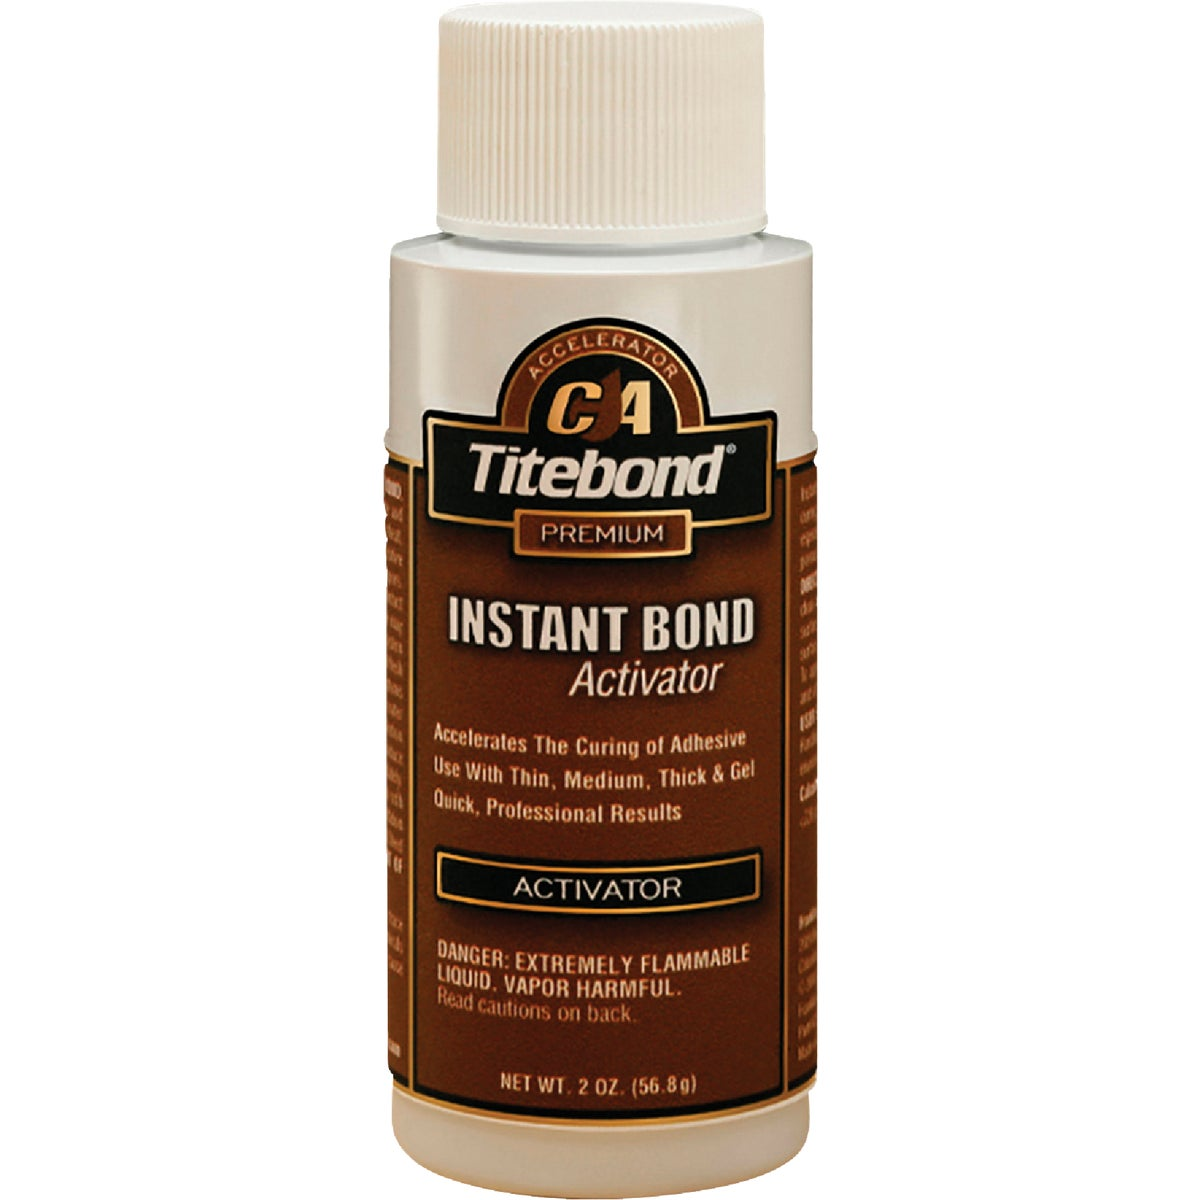 2OZ ACTIVATOR INST BOND - 6311 by Franklin Interl